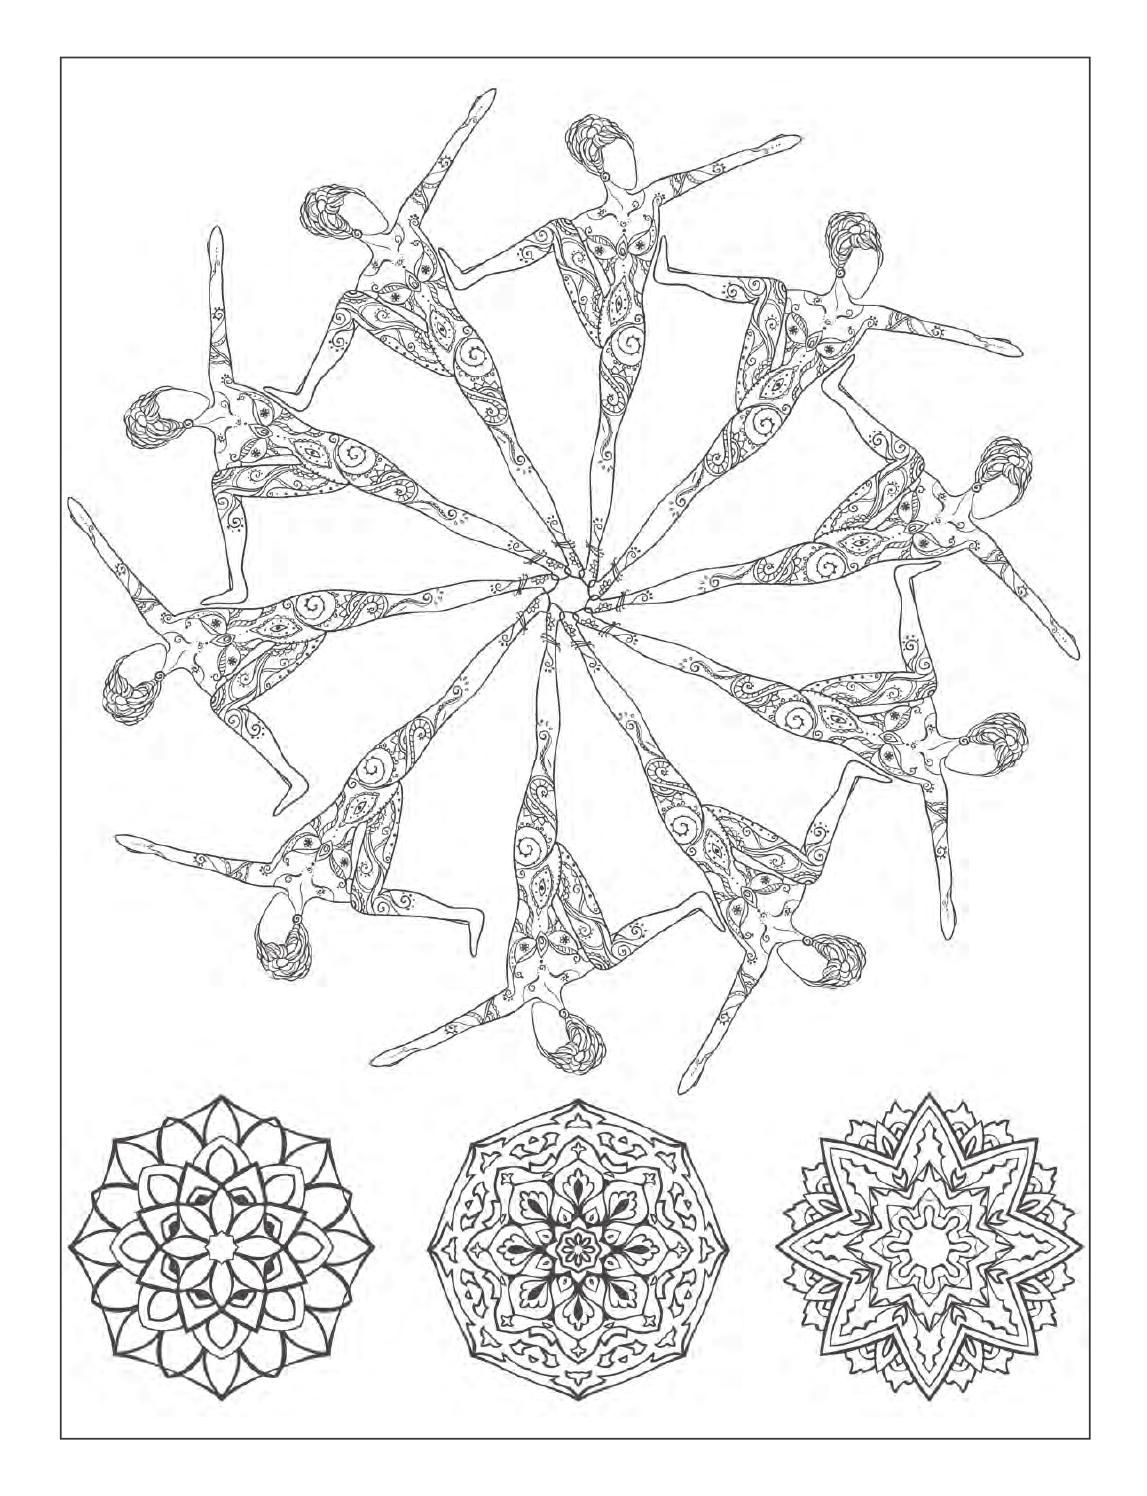 Yoga Coloring Page | Yoga | Pinterest | Yoga poses, Coloring and ...